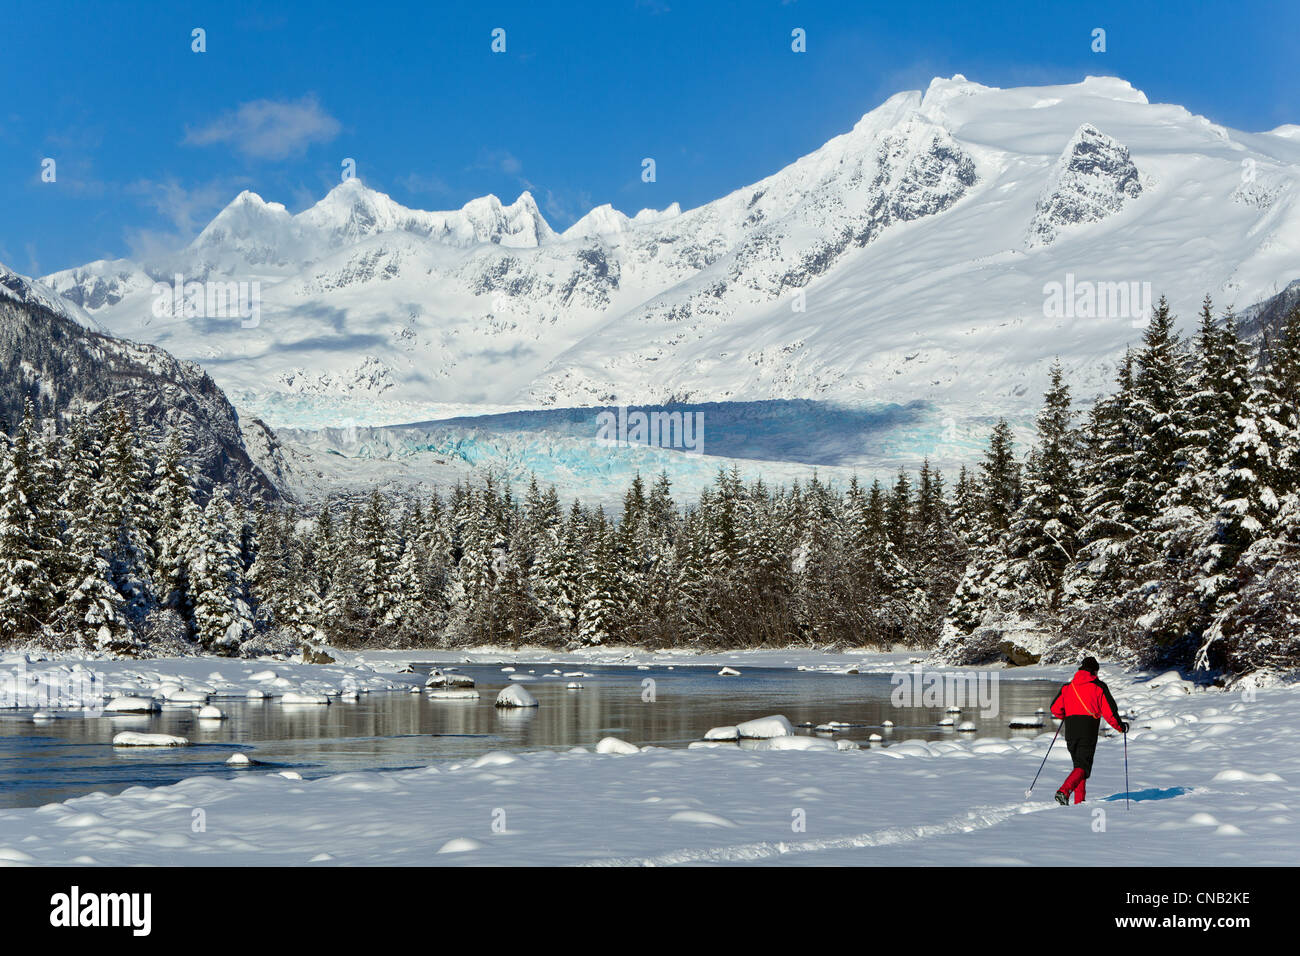 Person cross-country skiing in a winter landscape at Mendenhall River, Tongass National Forest, Alaska - Stock Image